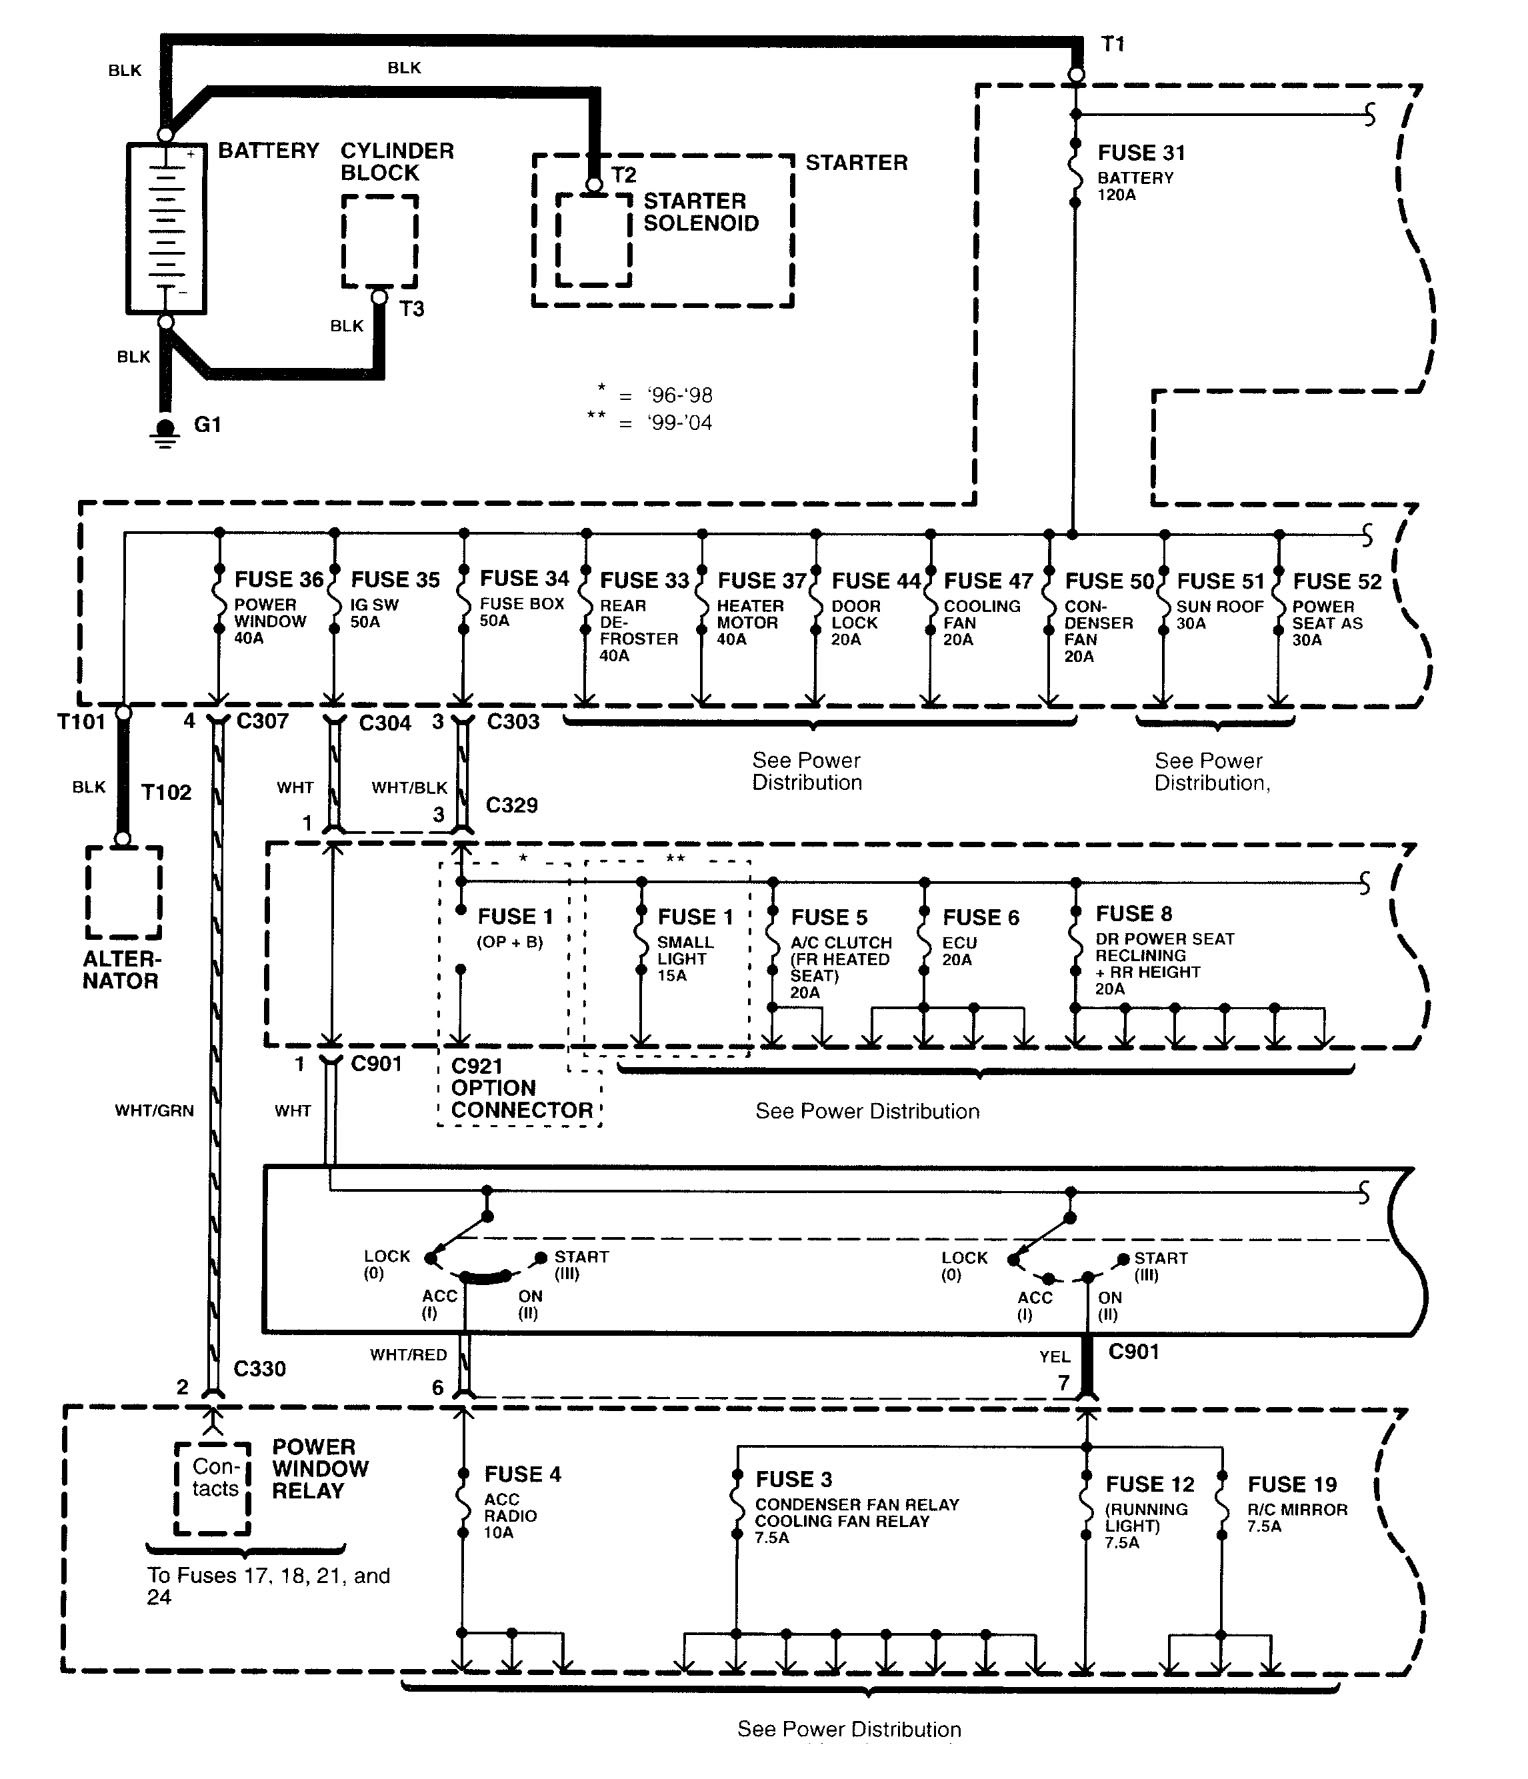 1996 Acura Rl Fuse Box Diagram Wiring Library 2003 2004 Diagrams Power Distribution Rh Carknowledge Info